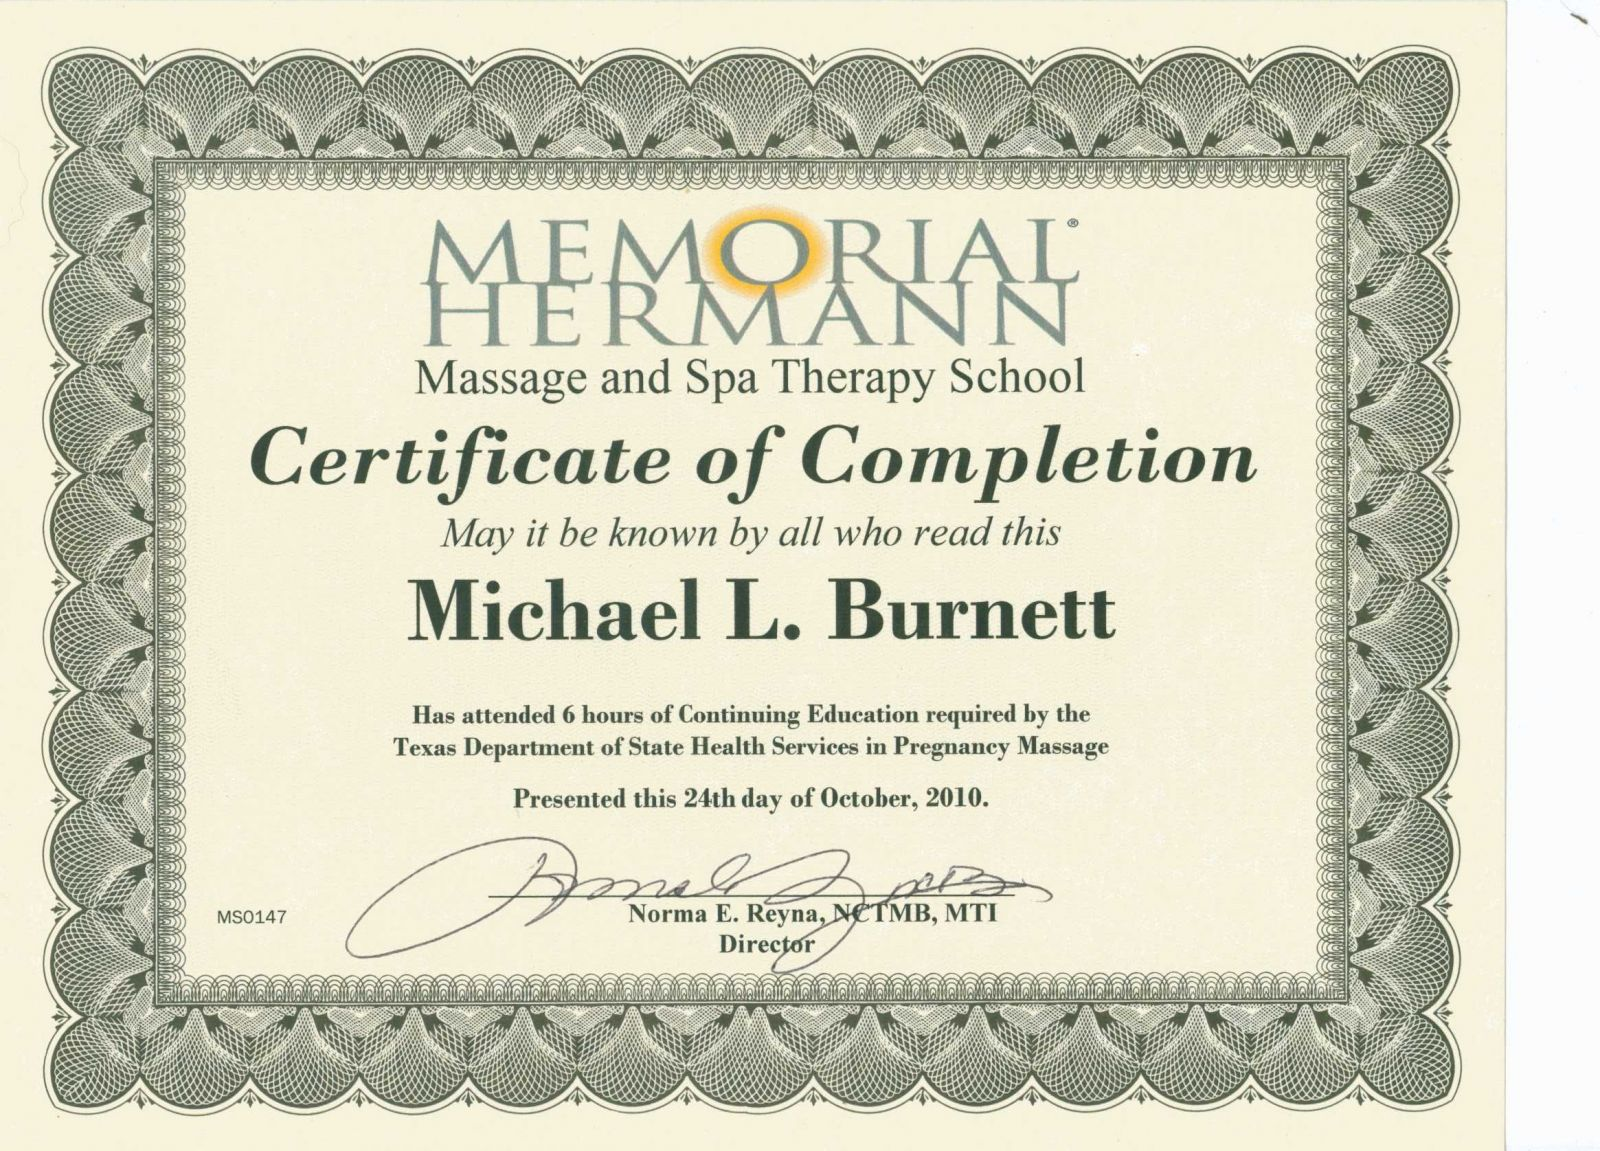 License and certifications we offer discounts to retirees education and medical staff students federal state and city employees as well as active military xflitez Gallery